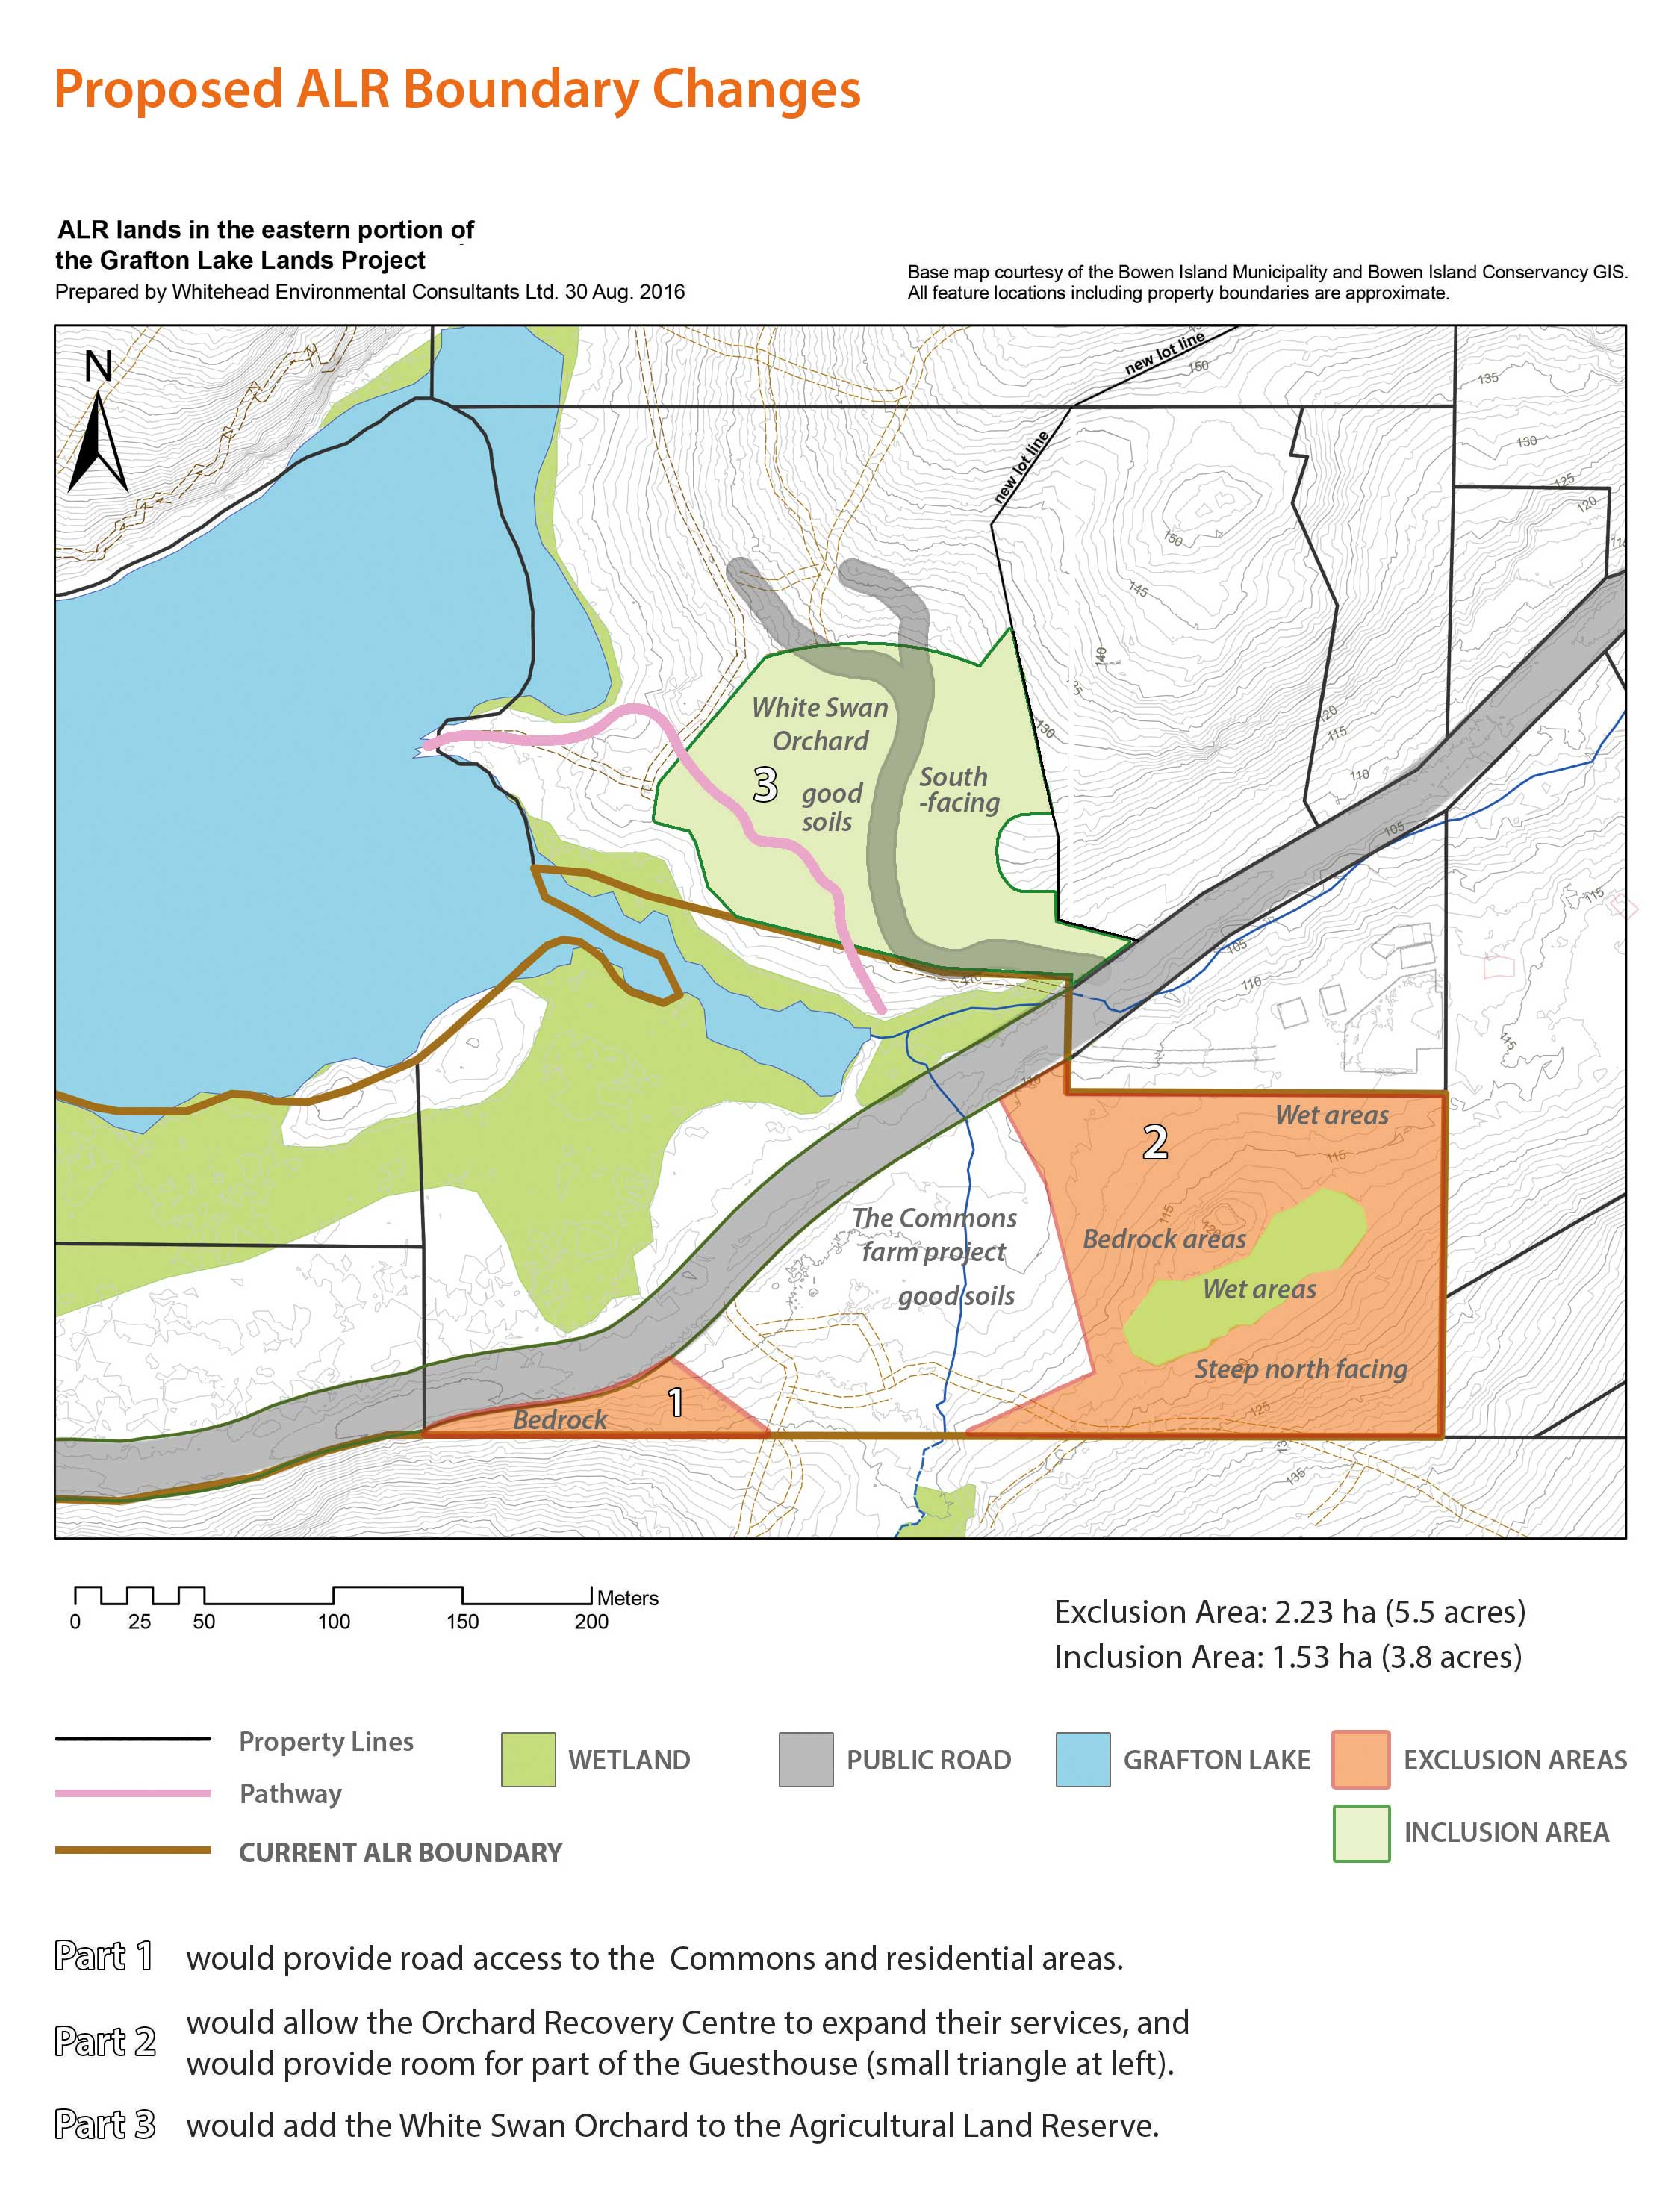 This map shows an area that would be excluded from the land reserve for the Orchard Recovery Centre, and an area elsewhere that would be added to the reserve.